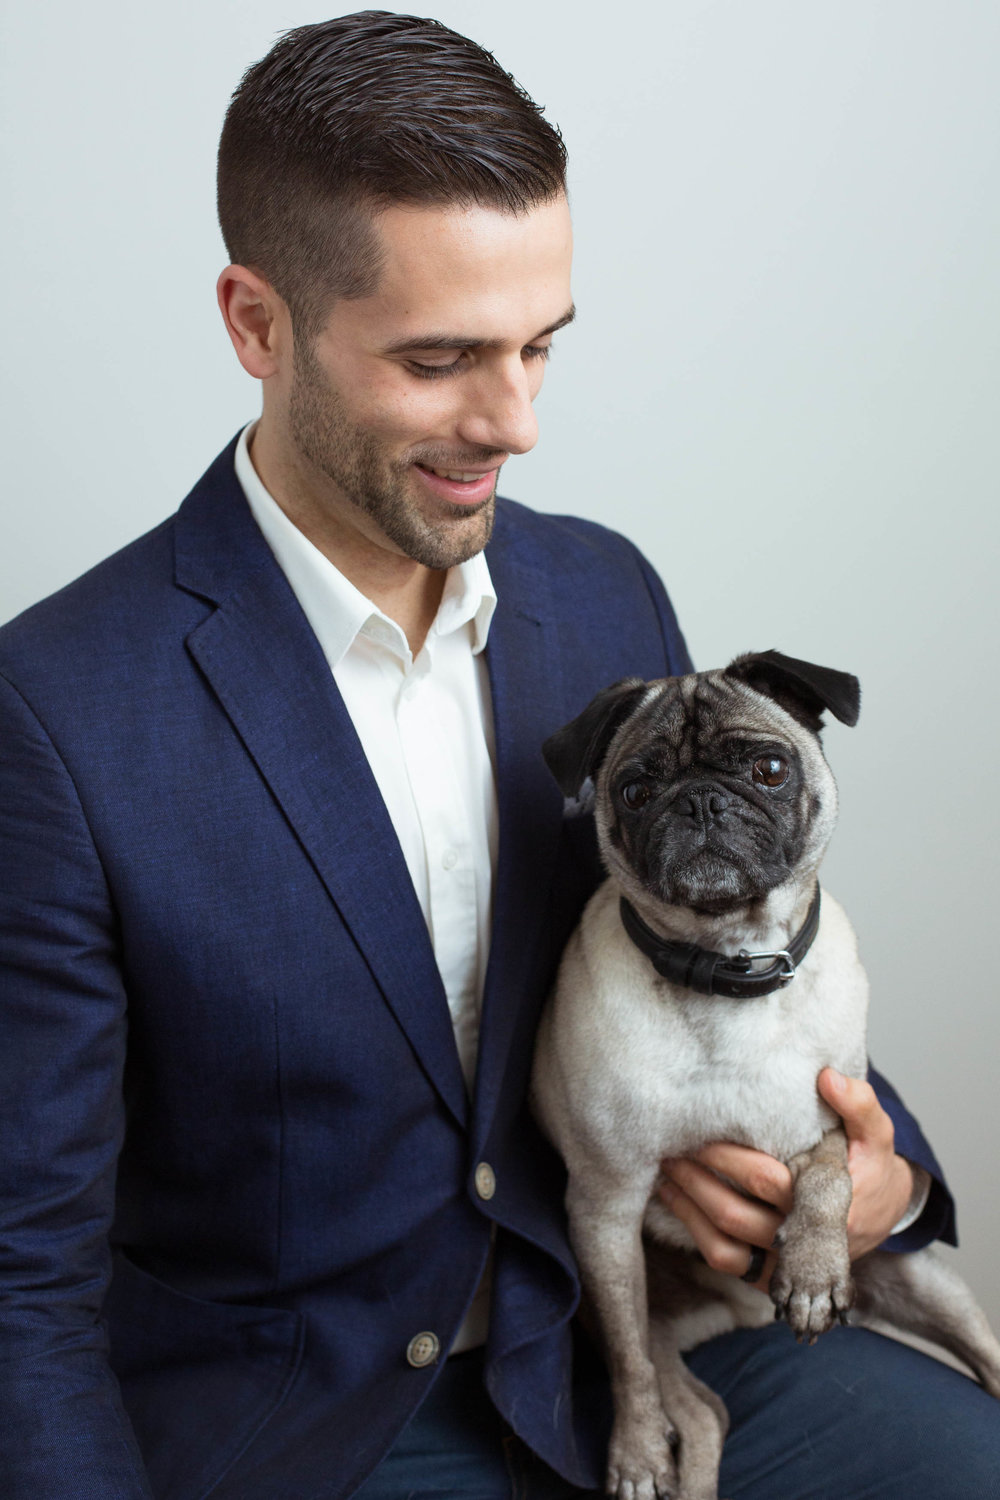 Alex McFadyen Mortgage Broker - When it comes to one of the biggest Financial decisions of your life, I believe it's important to know WHO is helping you. Here's a little bit about me.I currently live in Langley, B.C..with a pug named Ernie (also known as the MortgagePug) another pug named Jax, a cat named Burt, and my amazing wife, Sarah. I have been in the industry for over 7 years and am loving every minute of it!My passion is making the Mortgage Experience BETTER, since you may only apply for a mortgage once every 5 years my goal is to make it the BEST experience we can.I also believe that a good experience does not end the day your mortgage is funded, but more importantly continues on through support, feedback and who knows maybe even a great friendship.I look forward to the privilege of helping you through your first, next or last mortgage process.